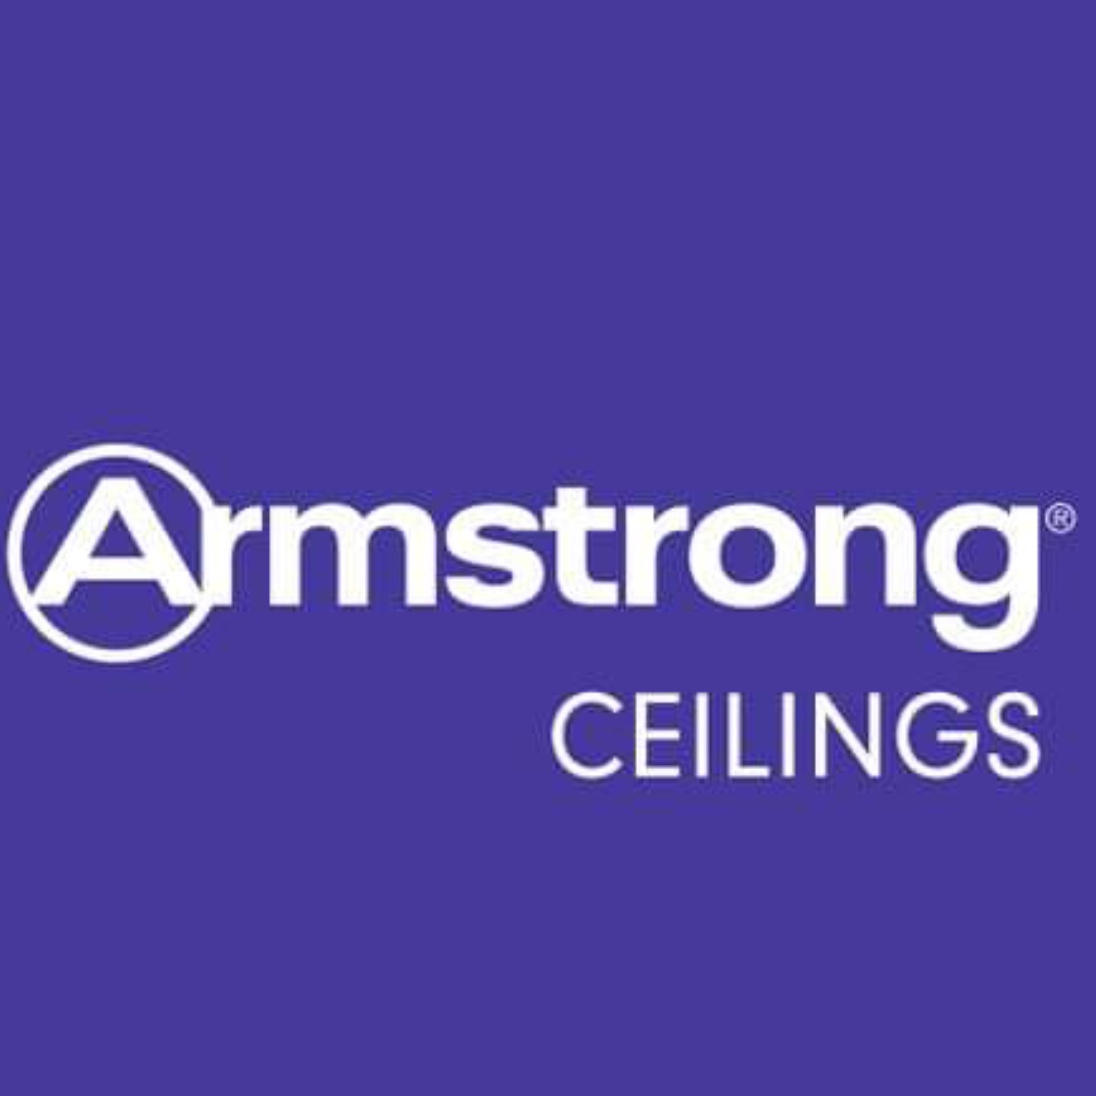 Armstrong Ceiling Tiles logo